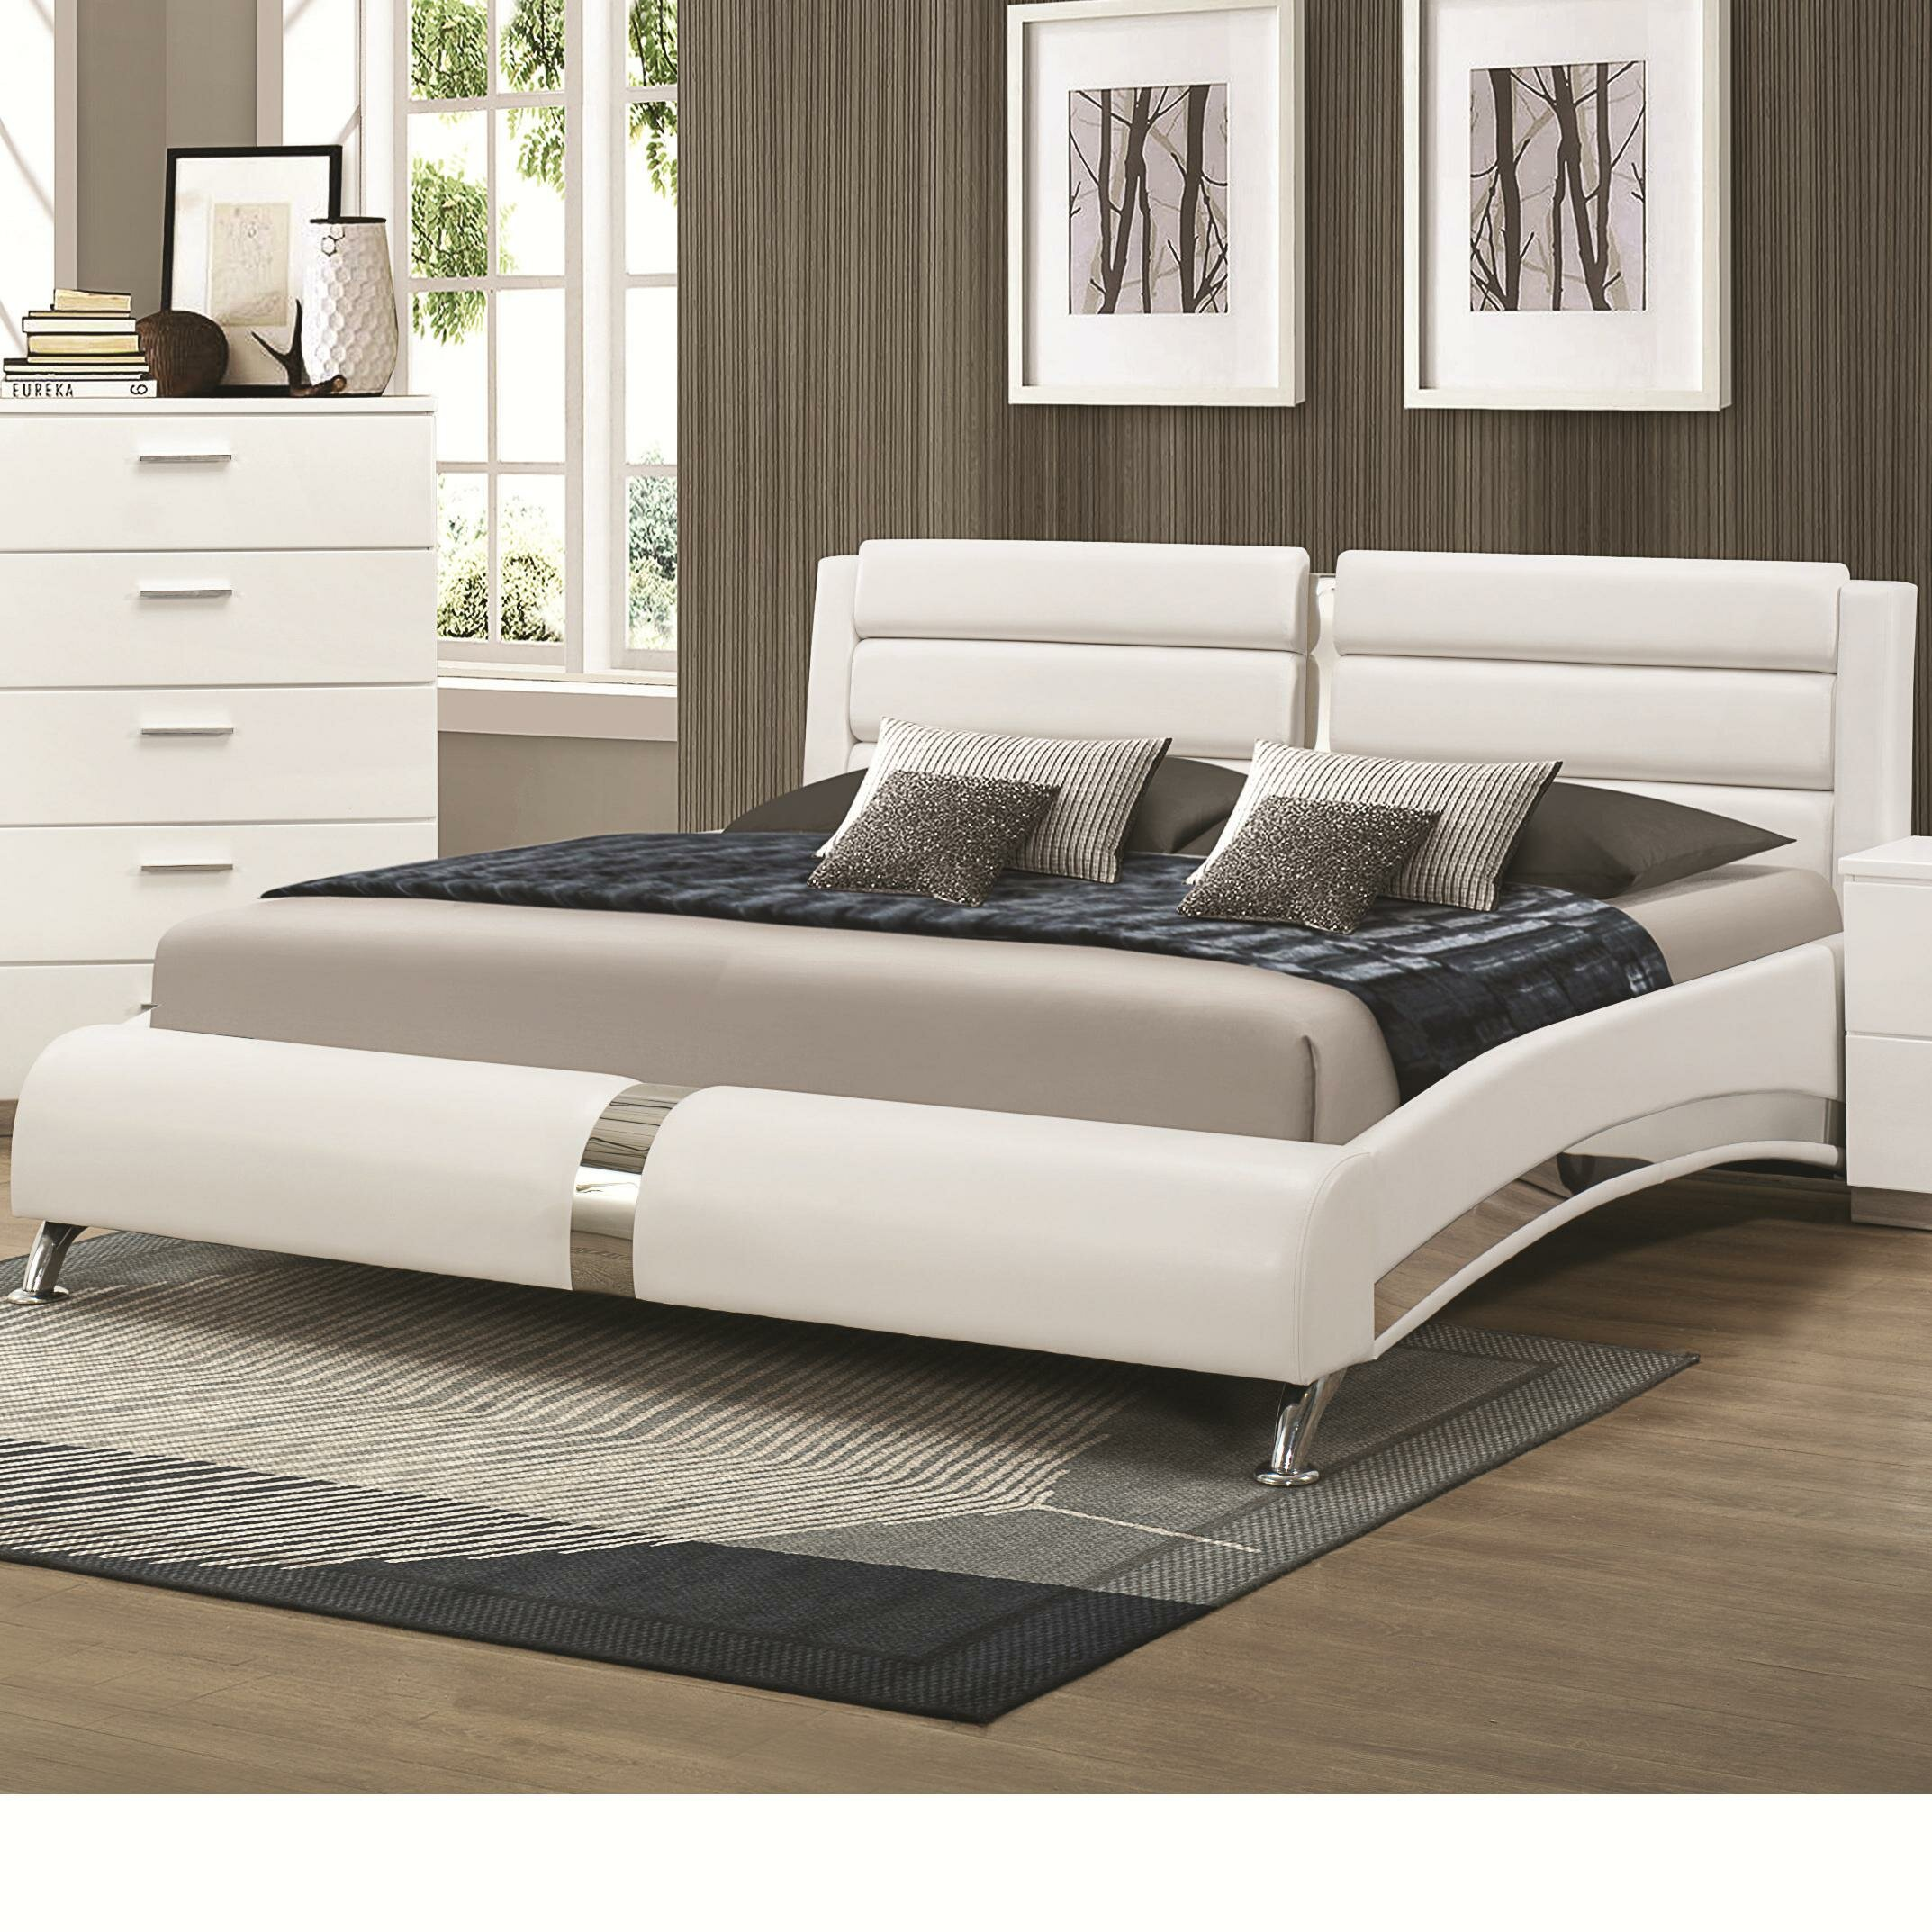 Picture of: California King Beds You Ll Love In 2020 Wayfair